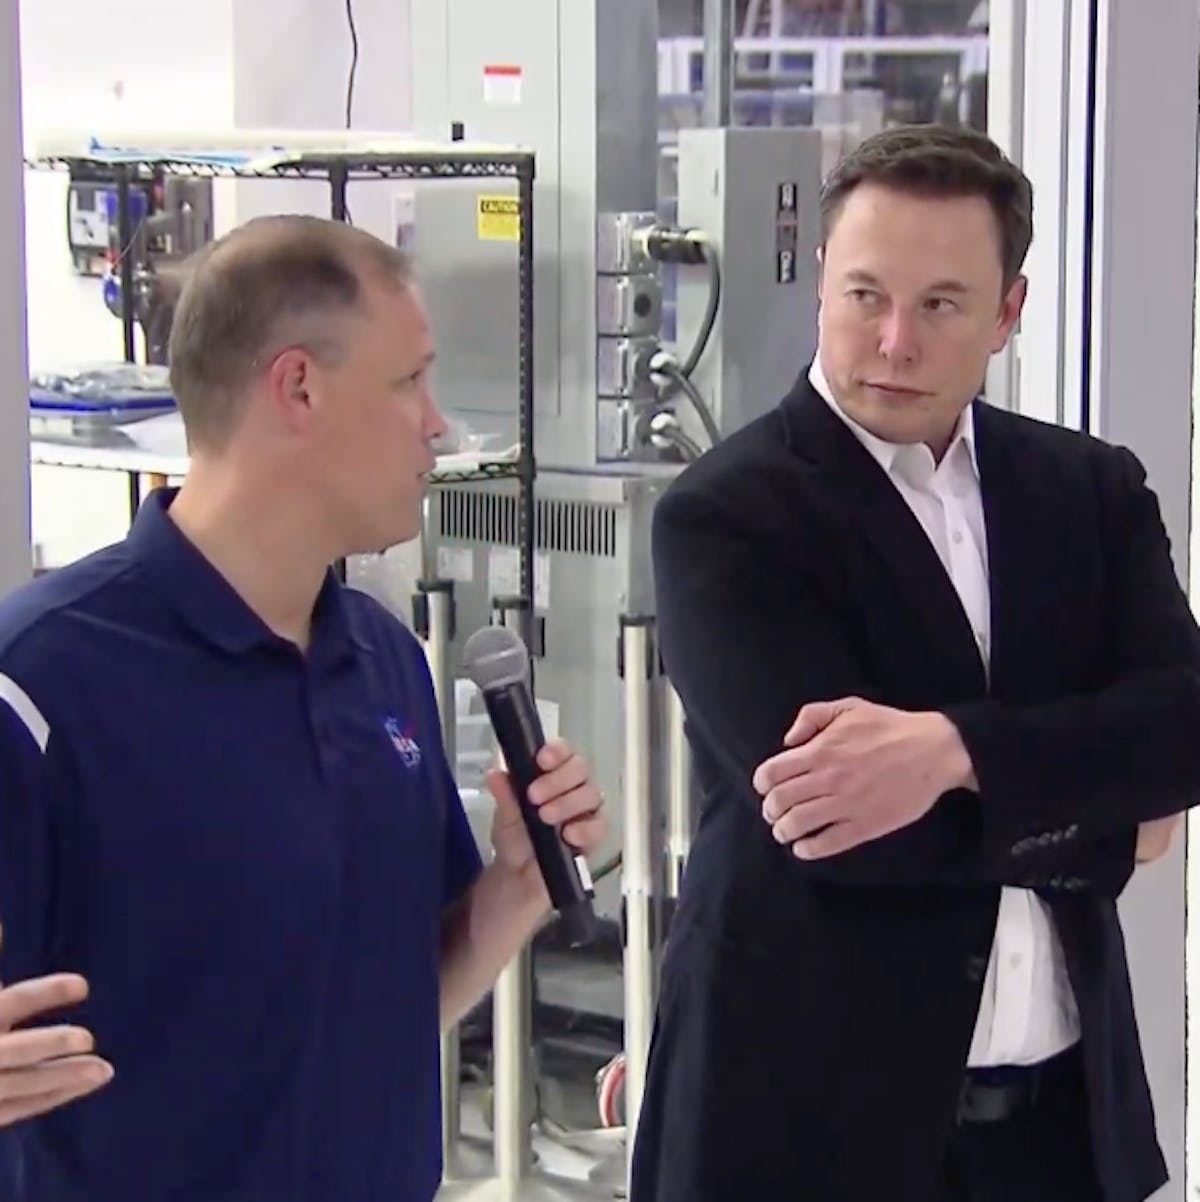 Elon Musk and NASA chief try a public reconciliation after awkward fight